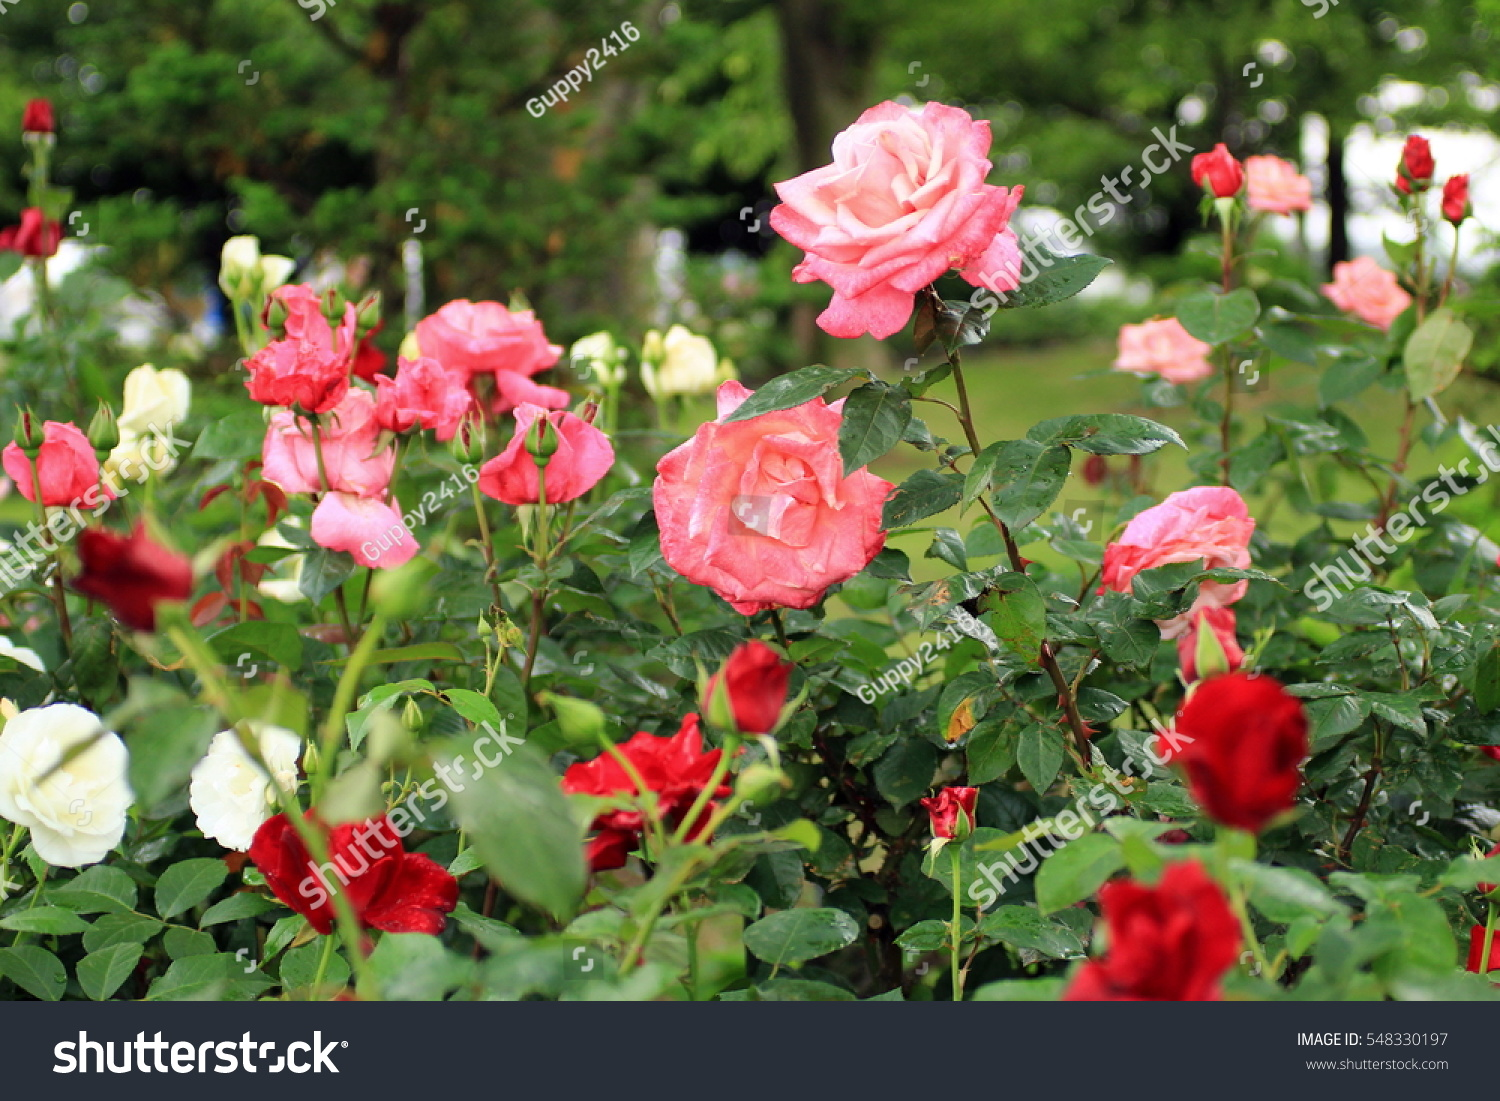 Roses around world rose garden petals stock photo edit now roses around the world rose garden petals wet by rain green leaves izmirmasajfo